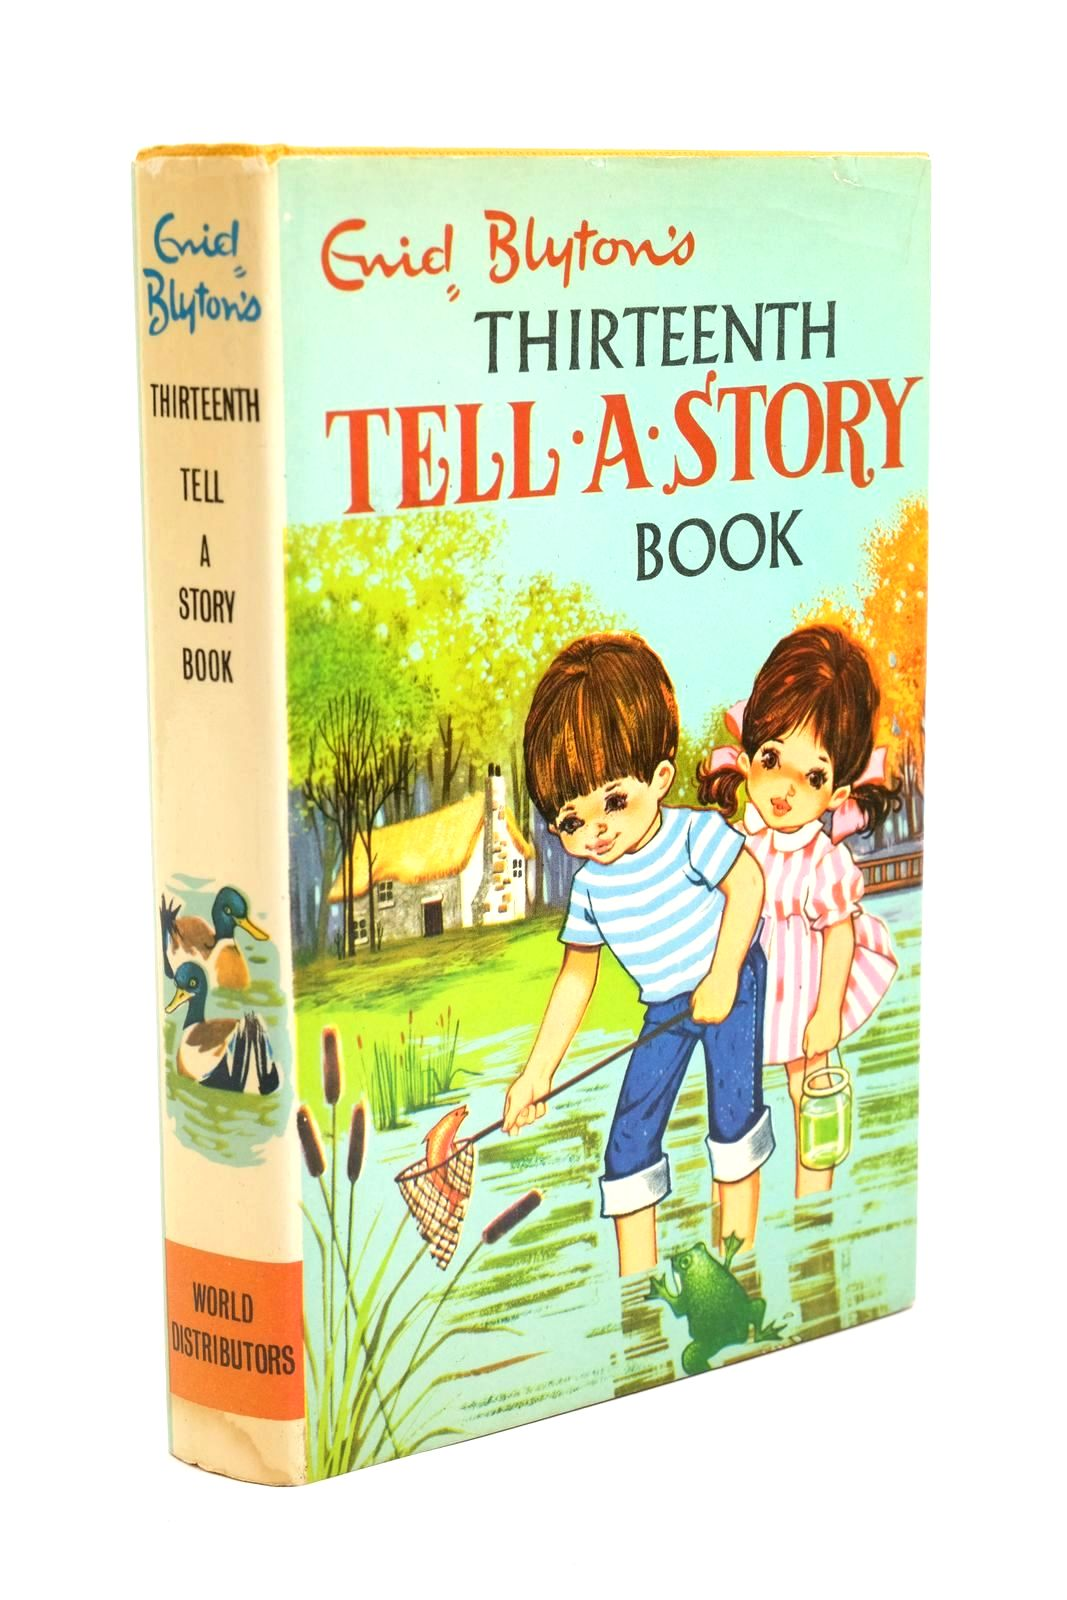 Photo of ENID BLYTON'S THIRTEENTH TELL-A-STORY BOOK- Stock Number: 1321094